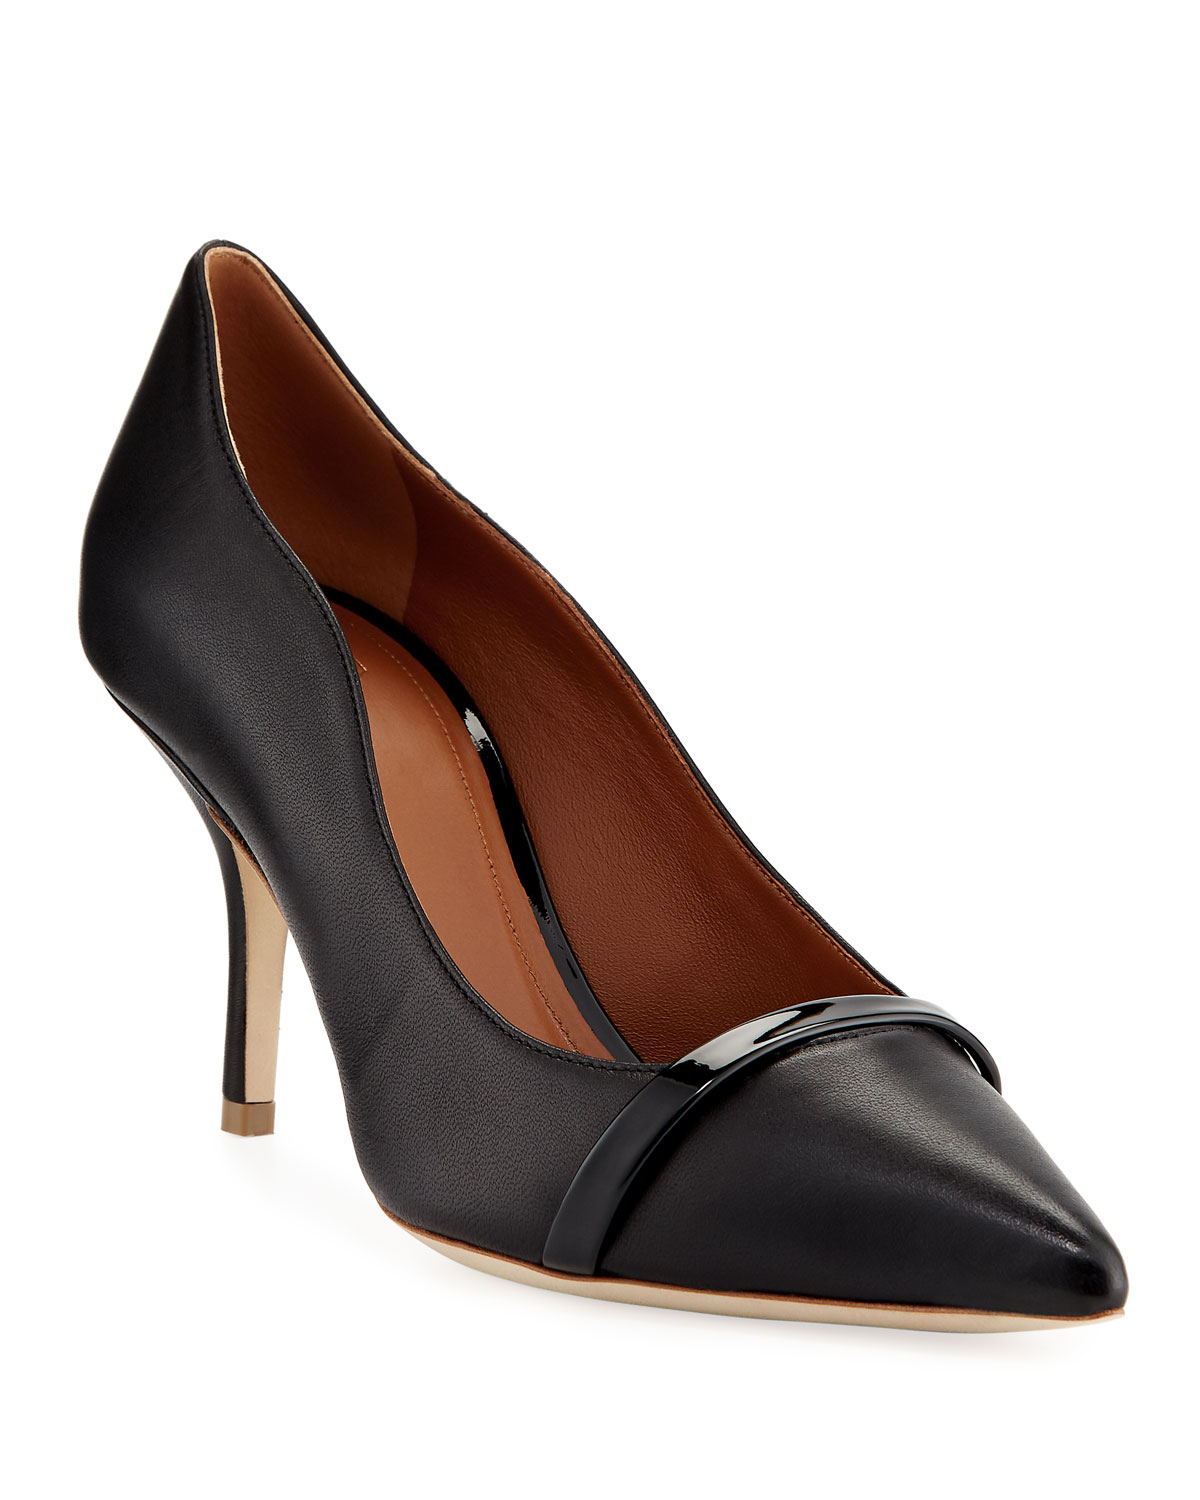 Maybelle 70mm Scalloped Leather Pumps